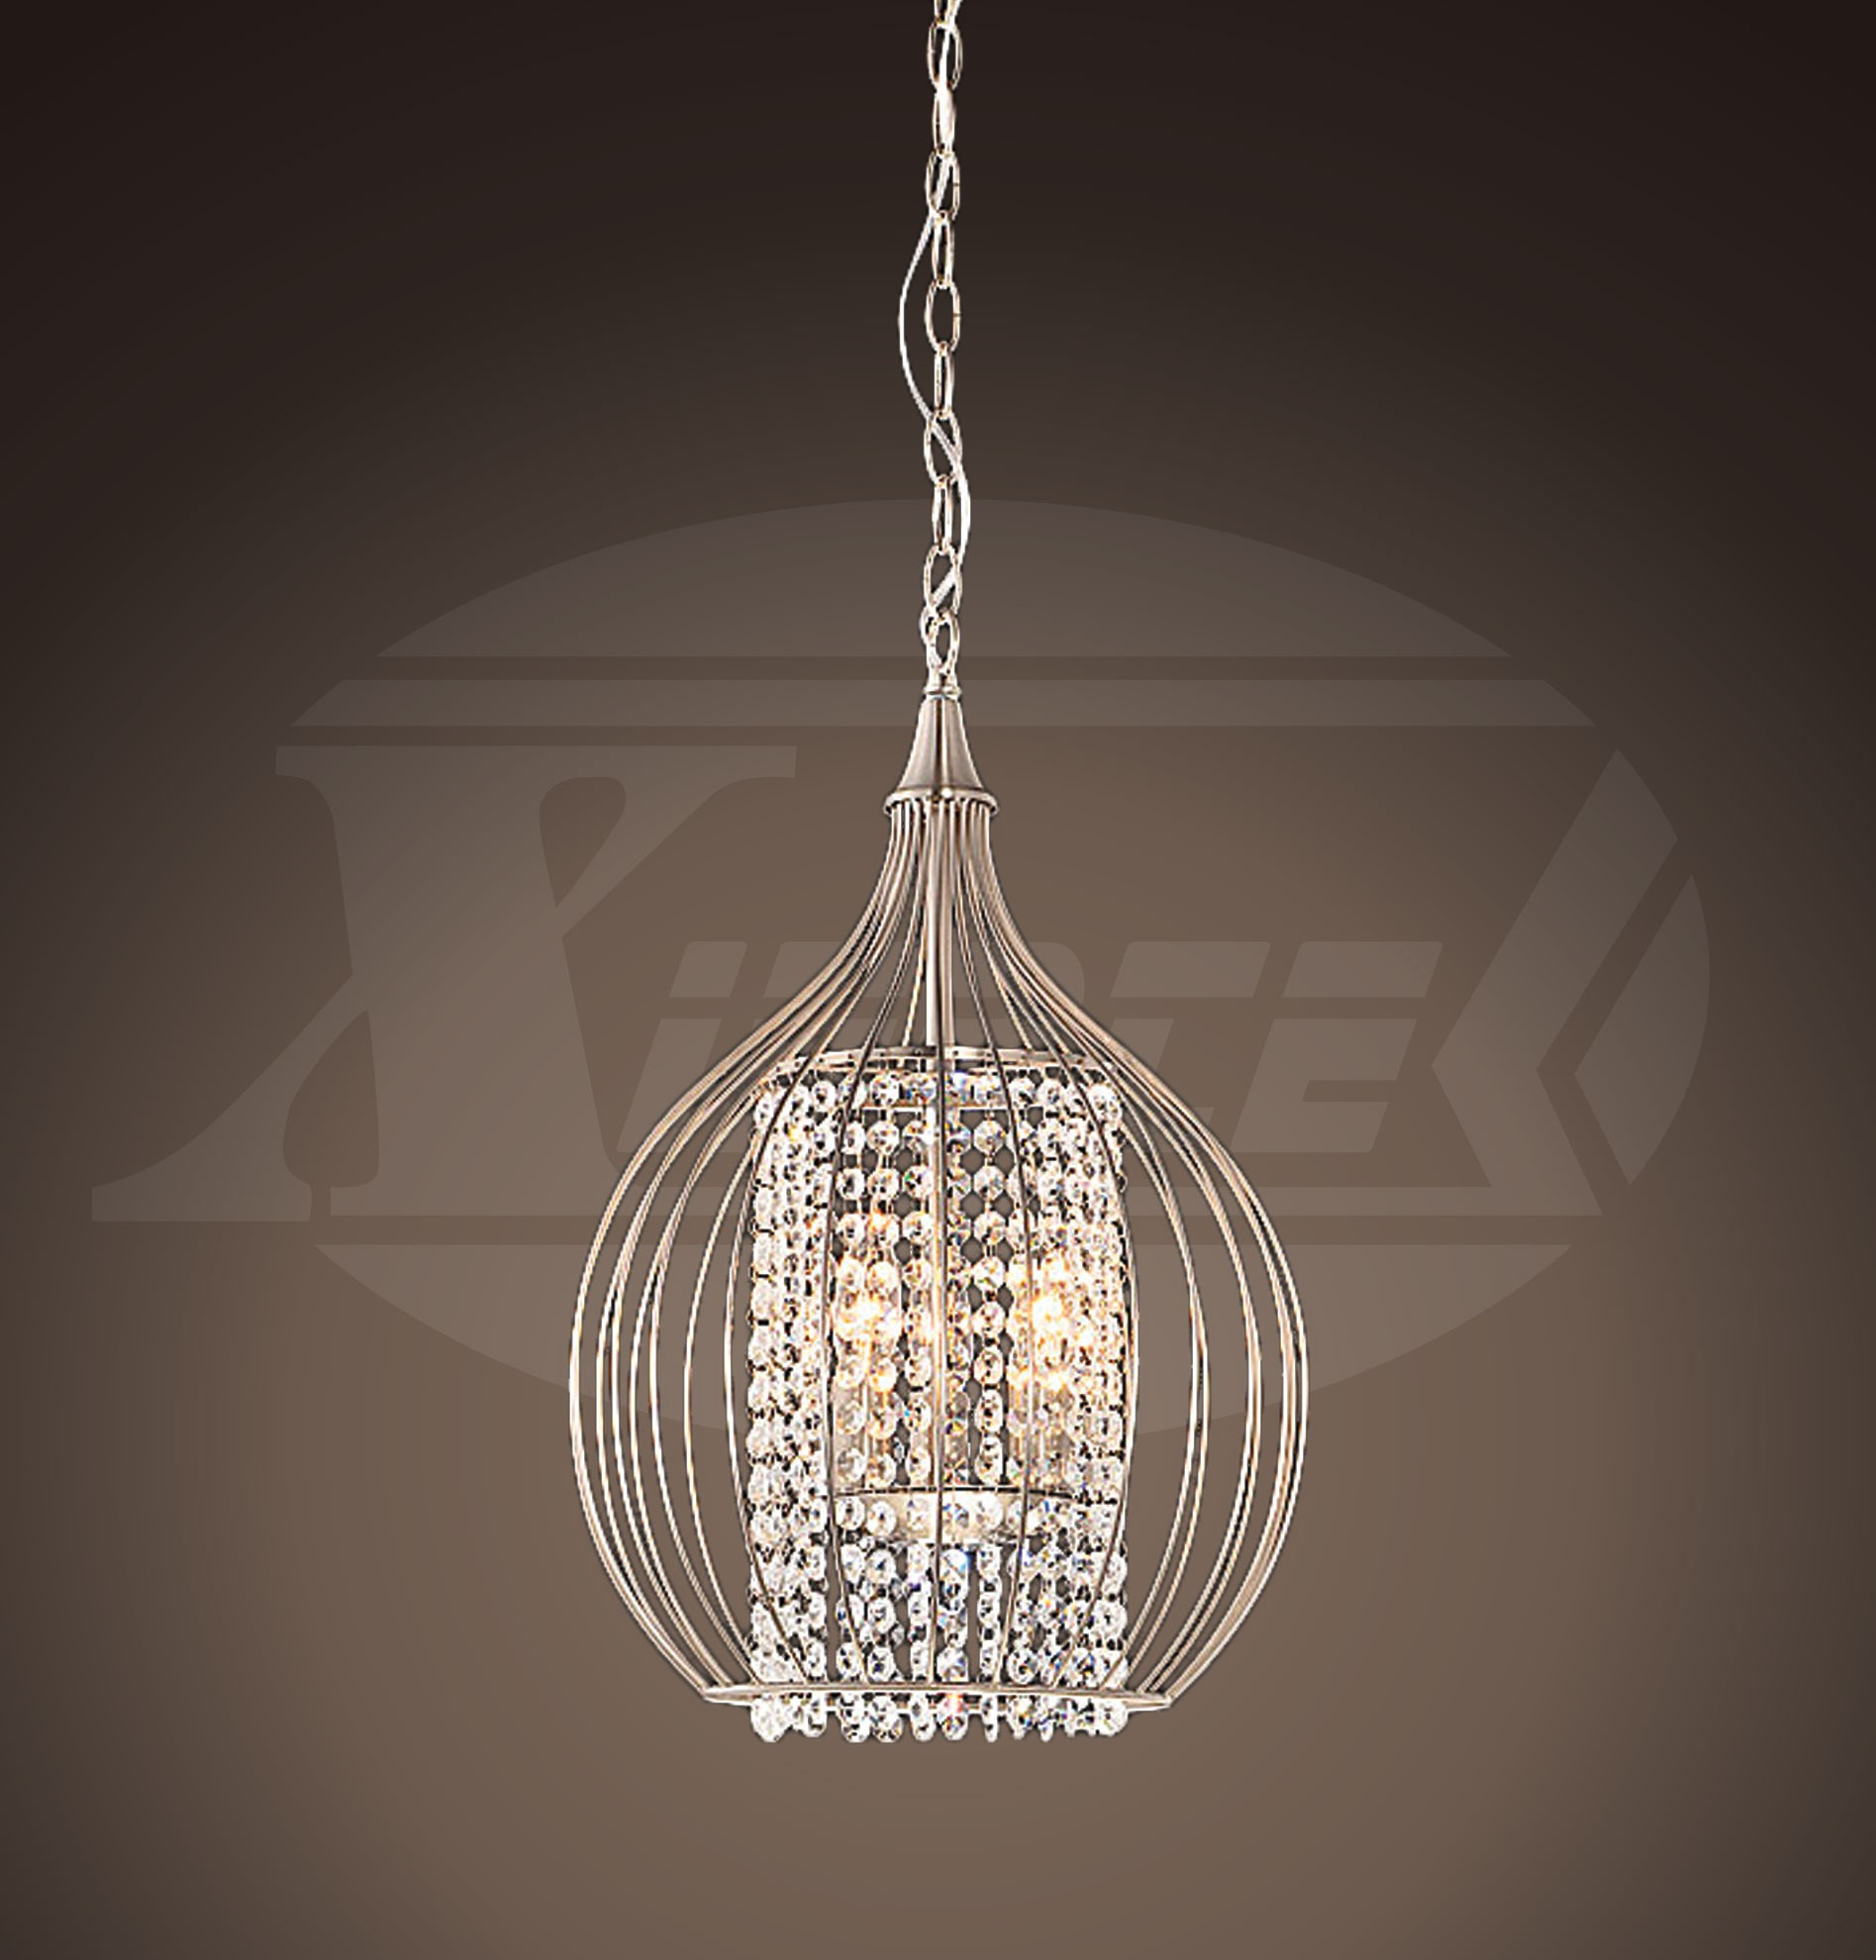 griem astley light hurricane nickel products chandelier thomas rv